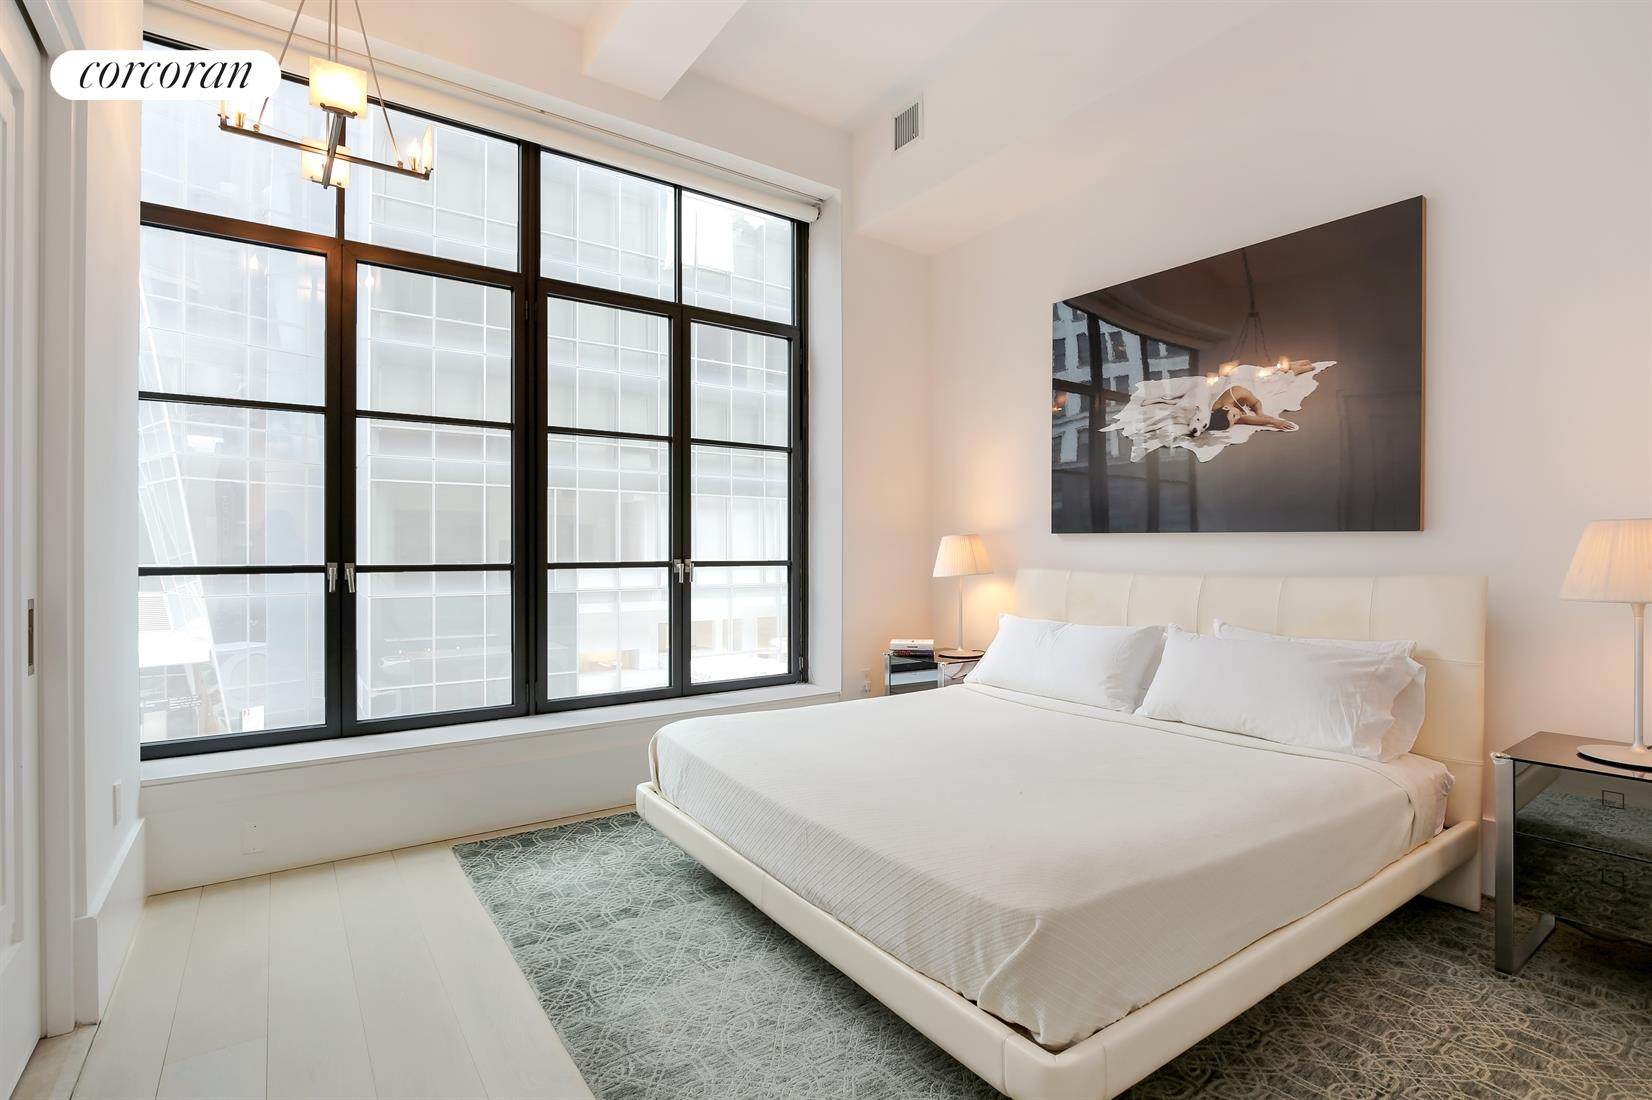 Corcoran, 404 Park Ave South, Apt. 2C, Gramercy Real Estate ...